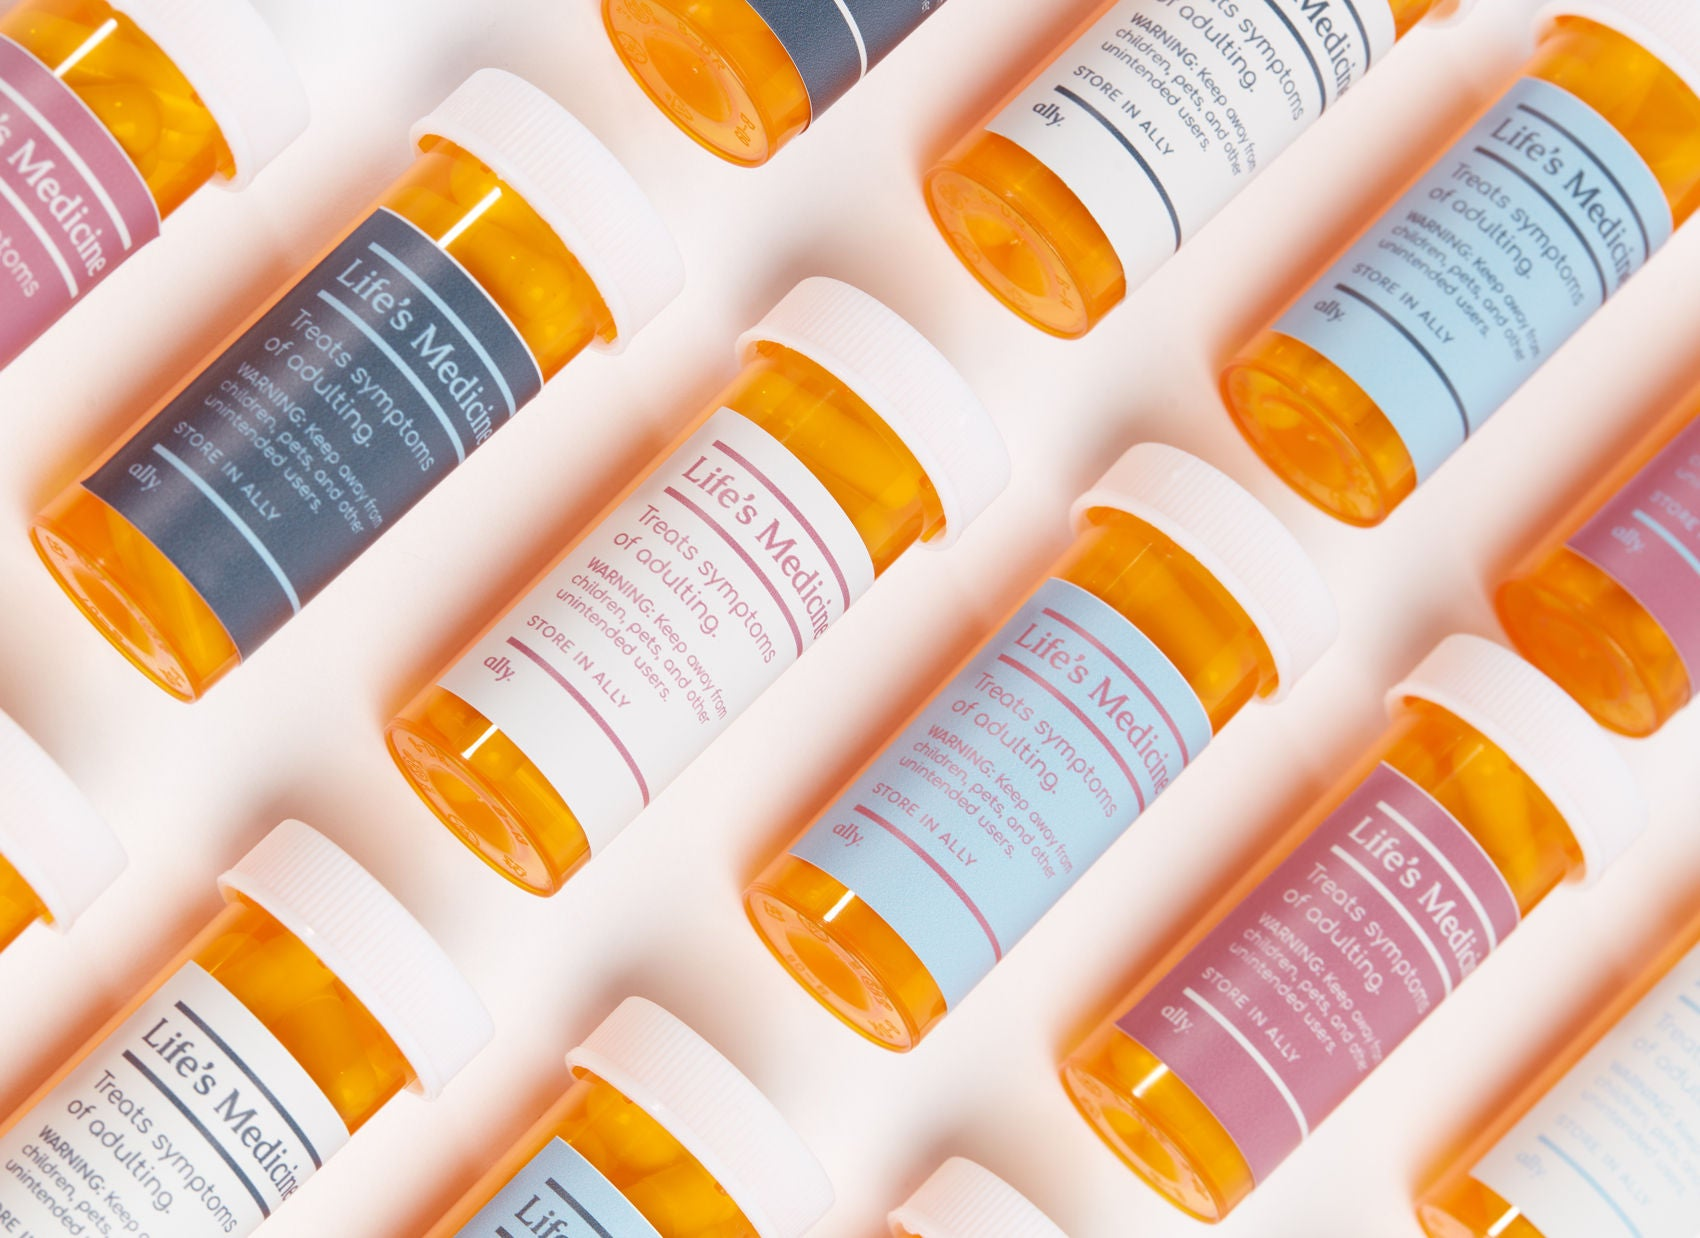 Pill bottles labelled with: Life's Medicine. Treats symptoms of adulting. Keep away from children and other unintended users. Story in your Ally.